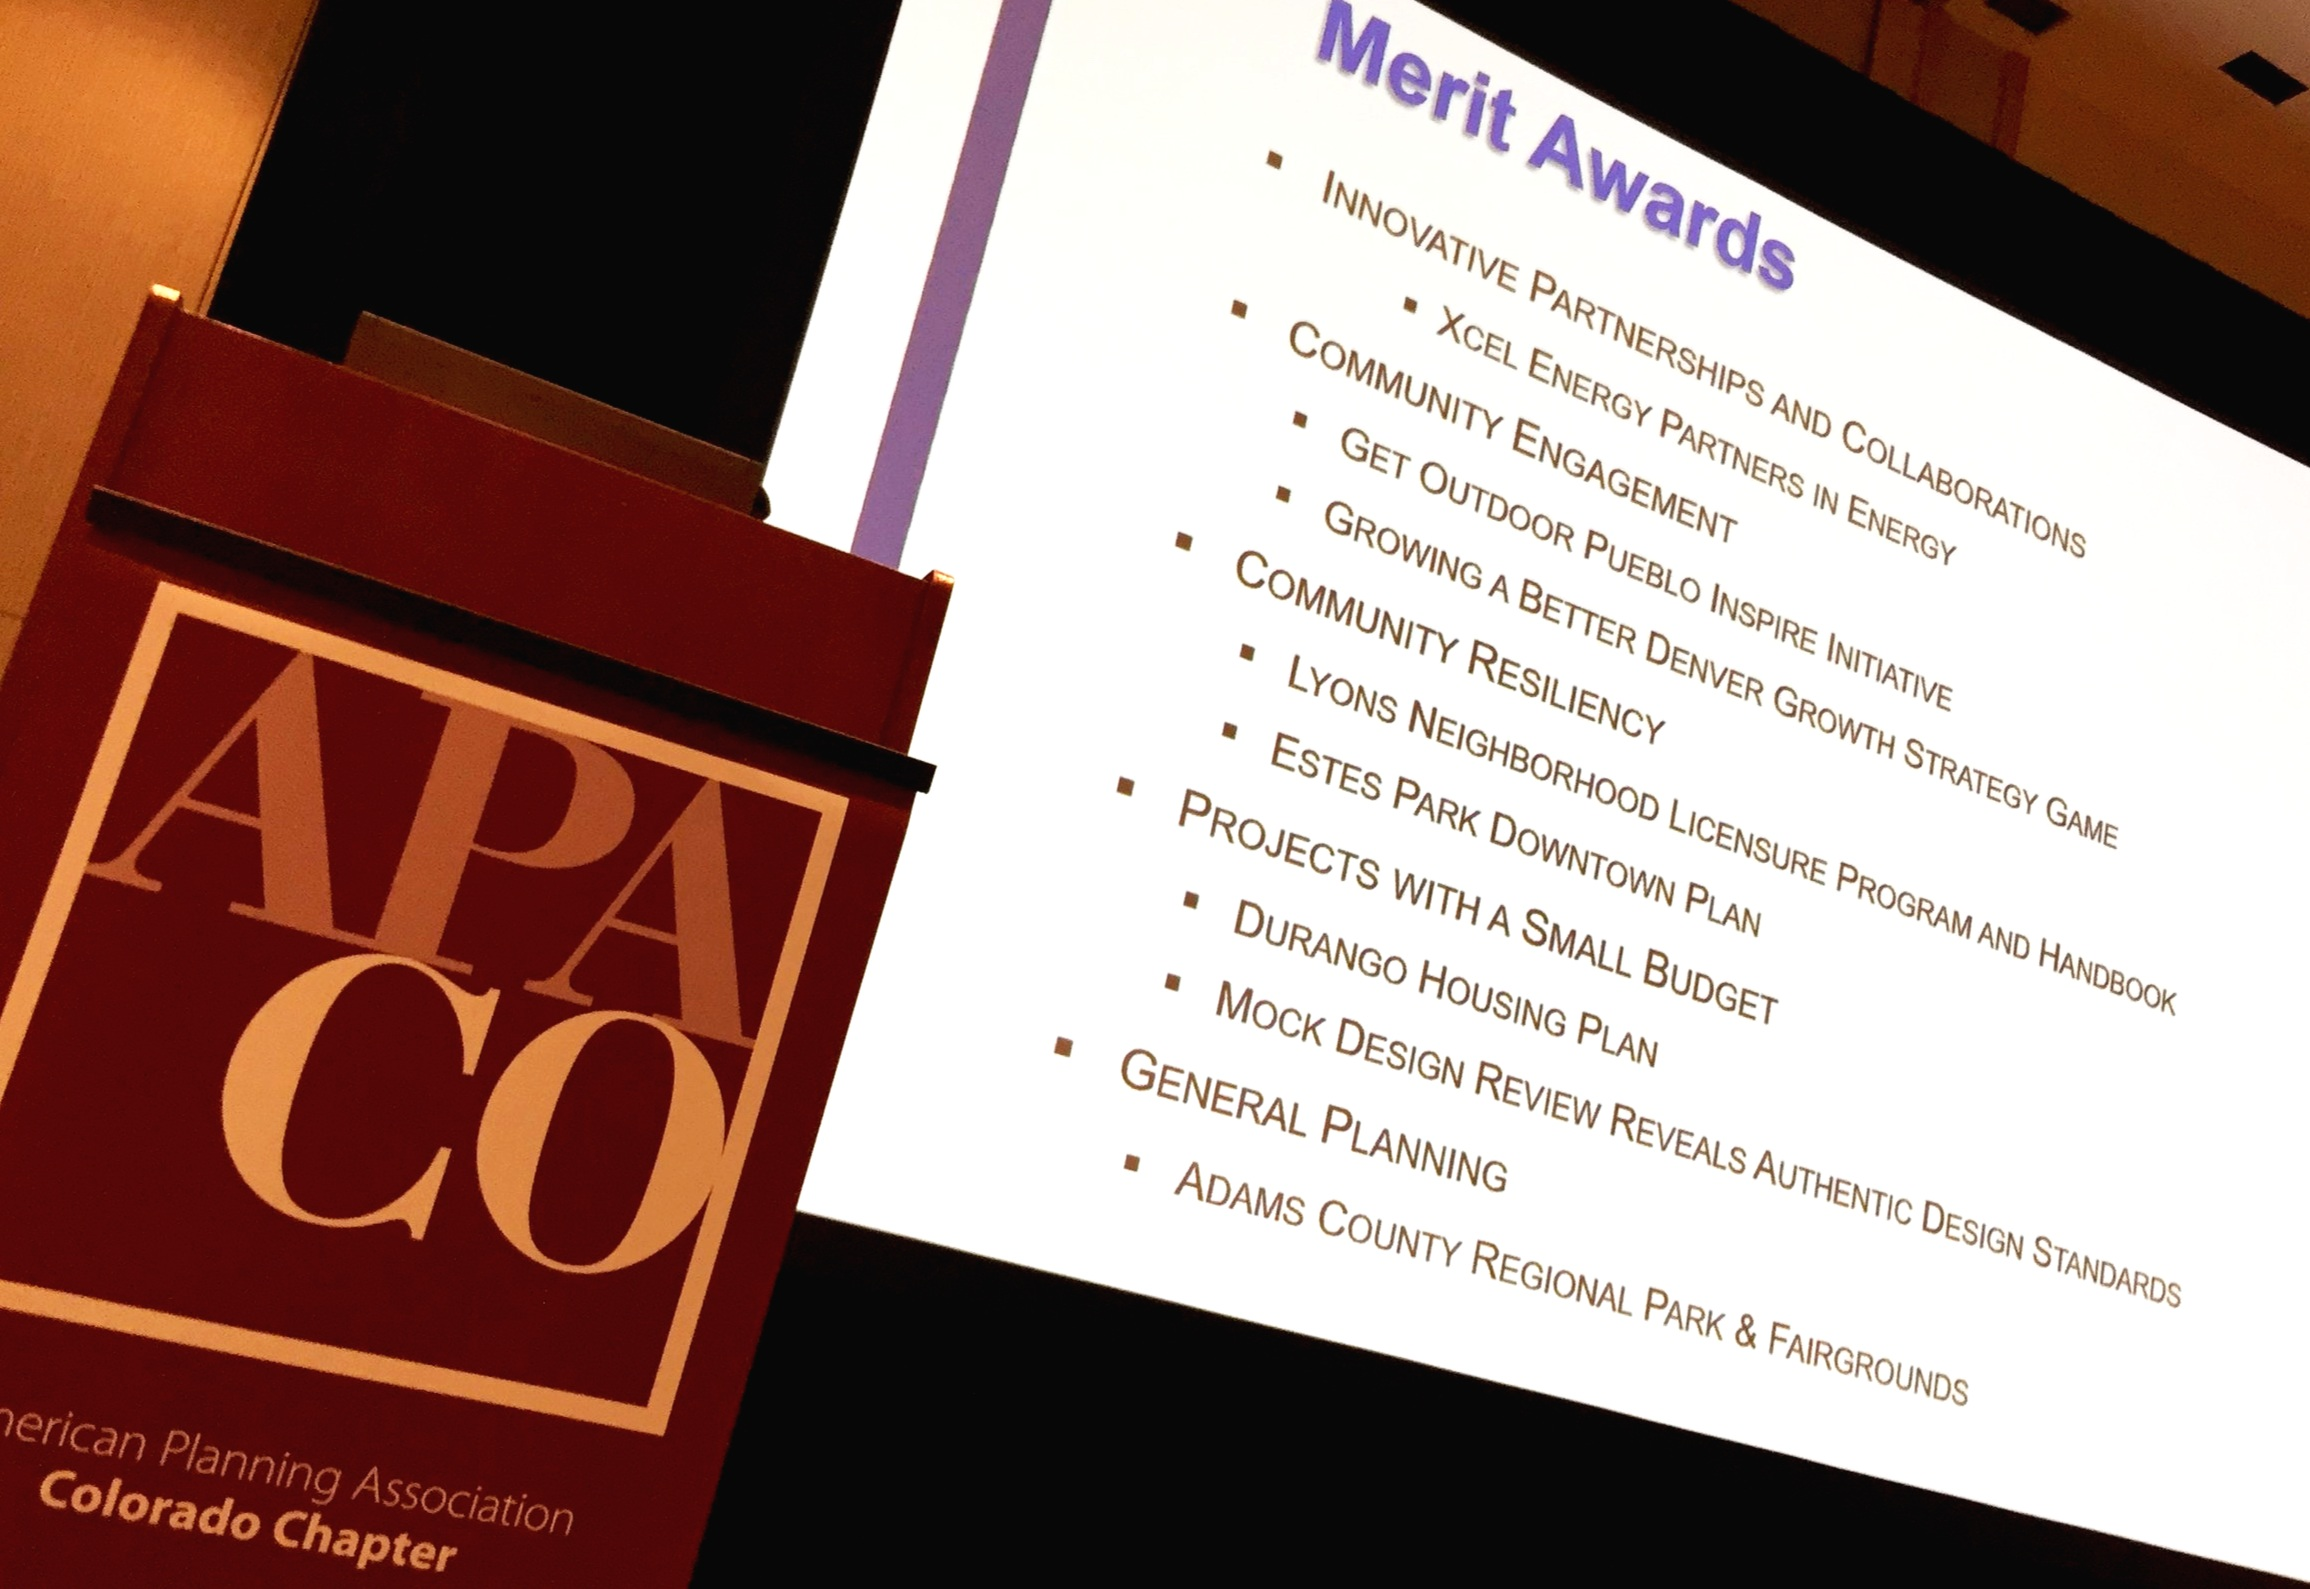 APA Merit Awards showcase programs that help communities recover from shocks stresses, such as floods, fires, mudslides, earthquakes, and tornadoes..